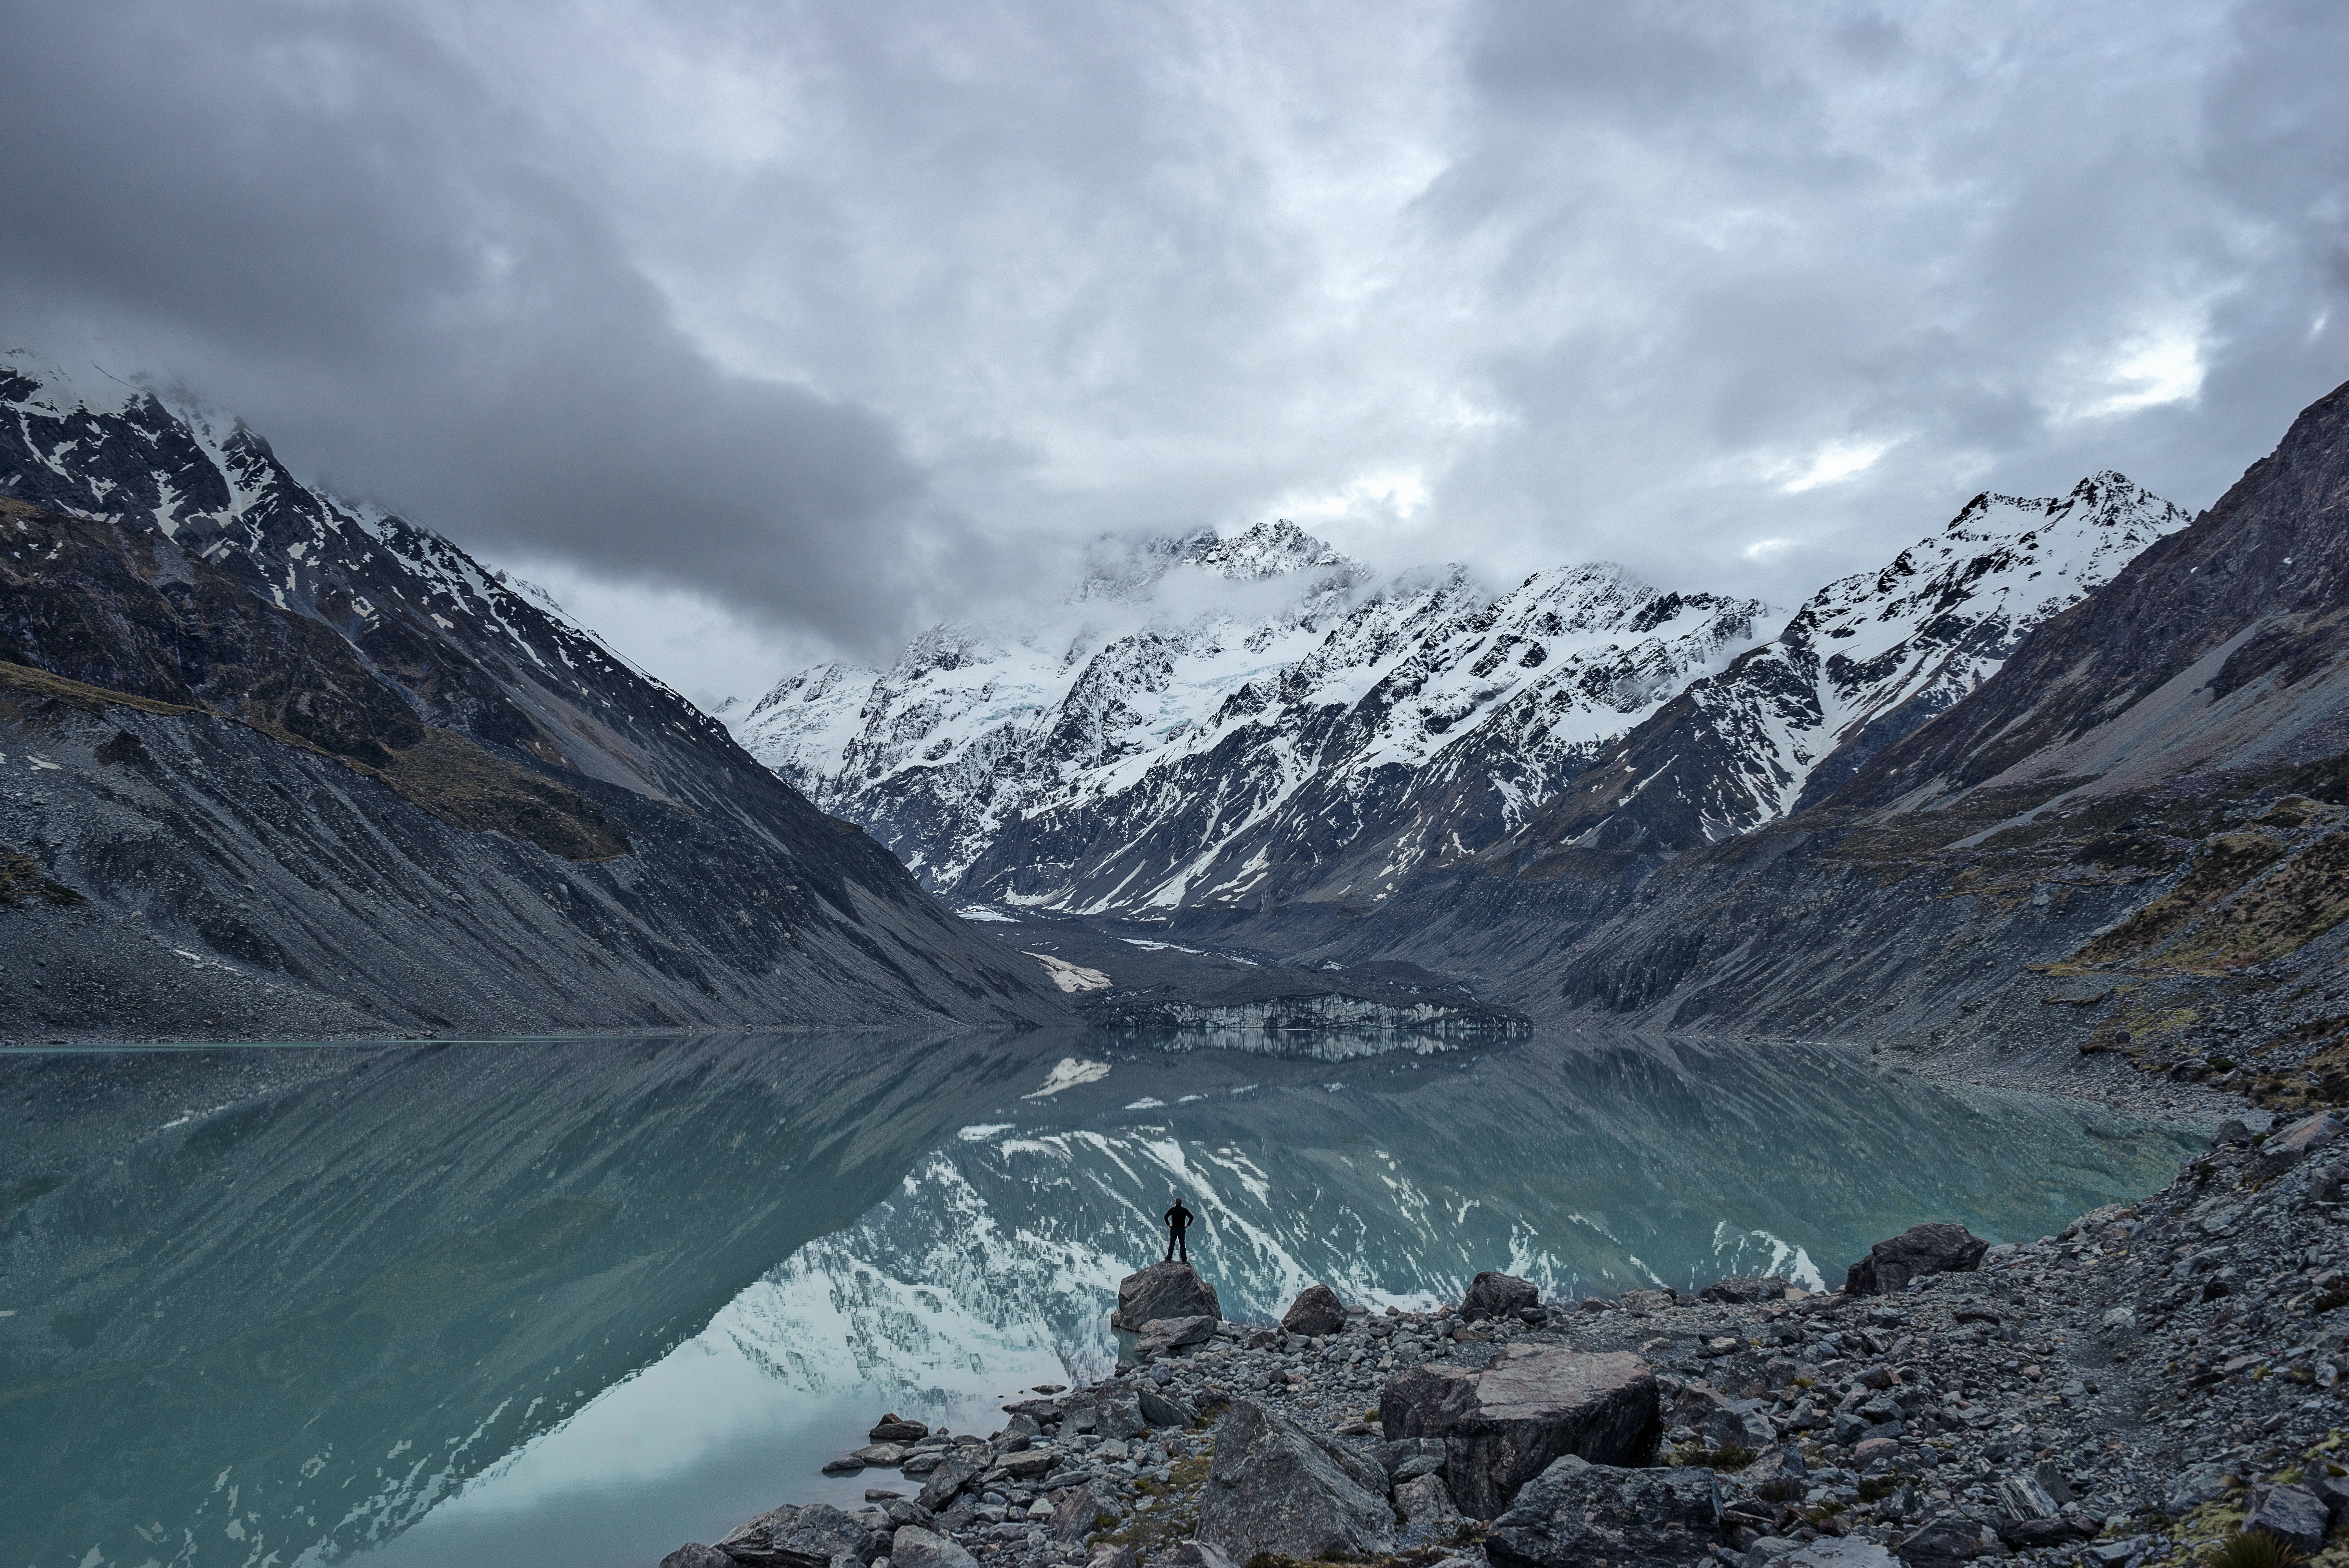 Snowy mountains are reflected in the water of Hooker Lake